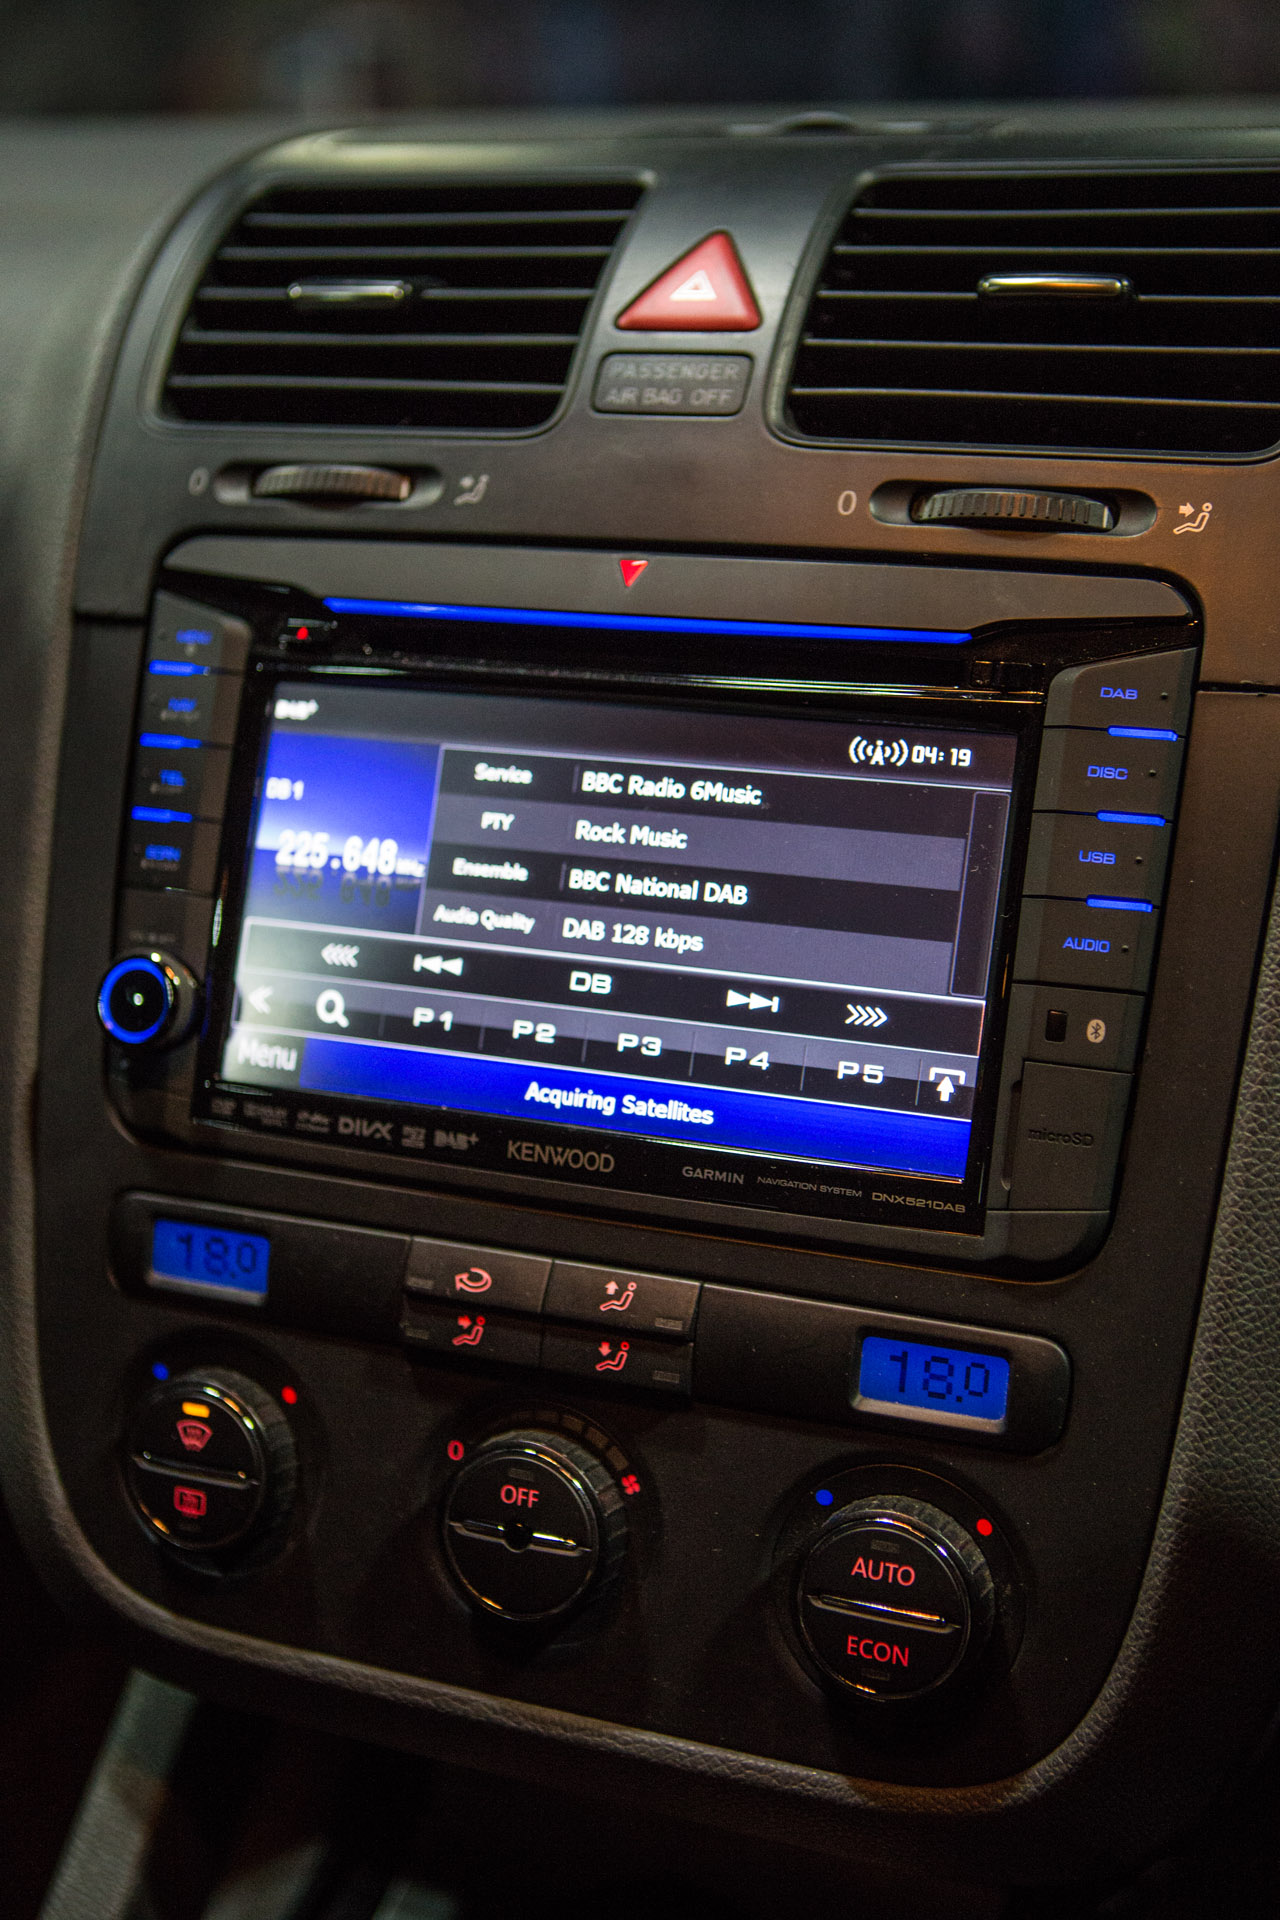 Dnx521dab At 180mph Kenwood Car Audio Amp Entertainment